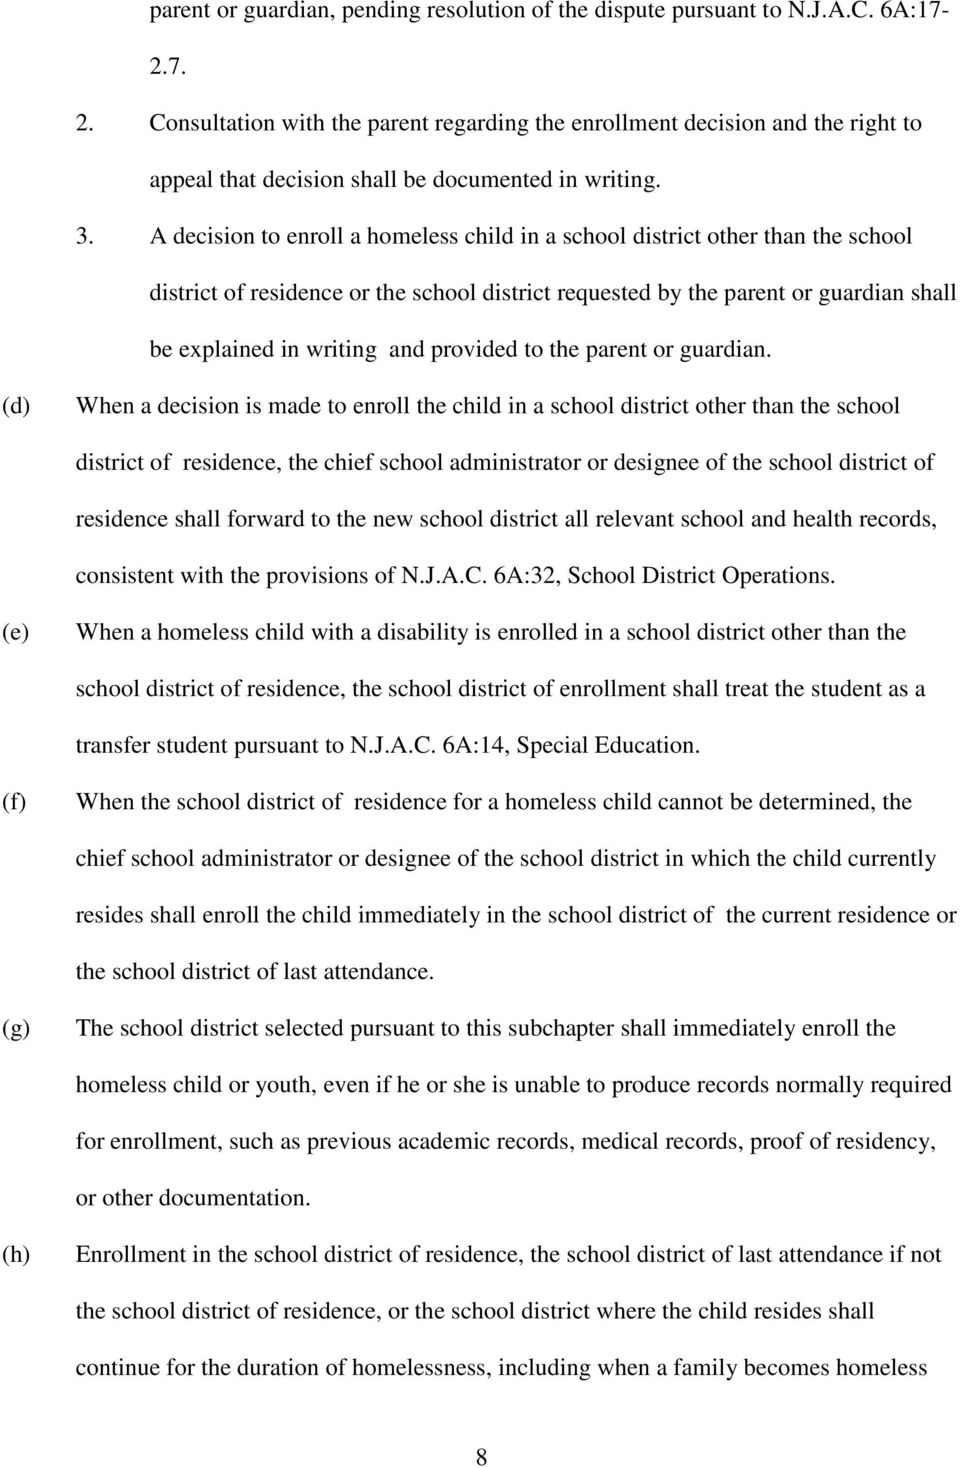 A decision to enroll a homeless child in a school district other than the school district of residence or the school district requested by the parent or guardian shall be explained in writing and